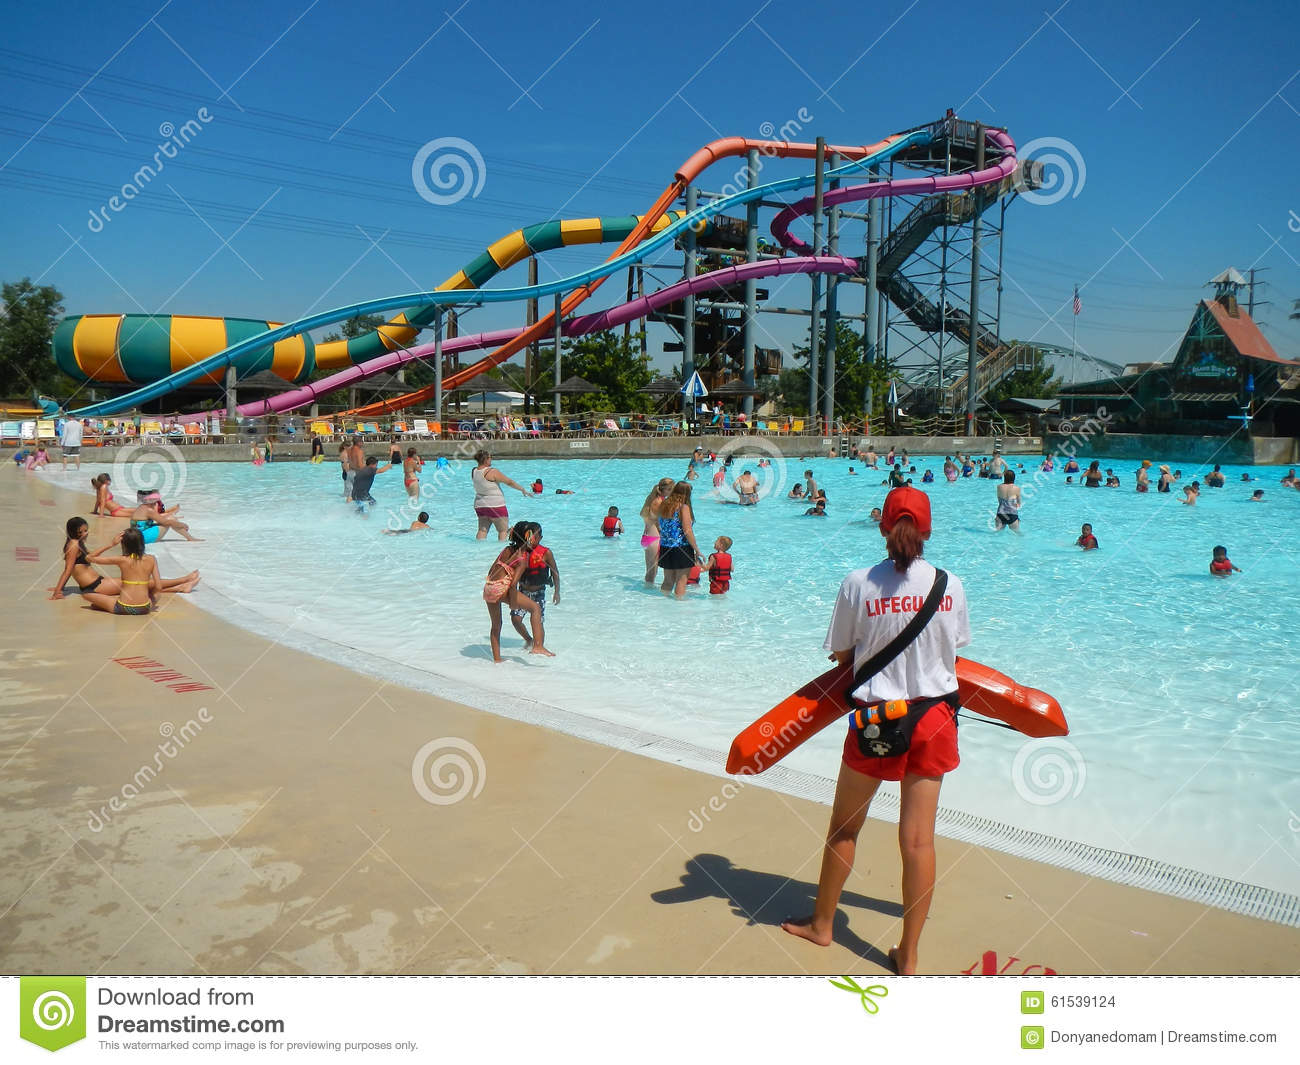 People swimming in a pool at Water park